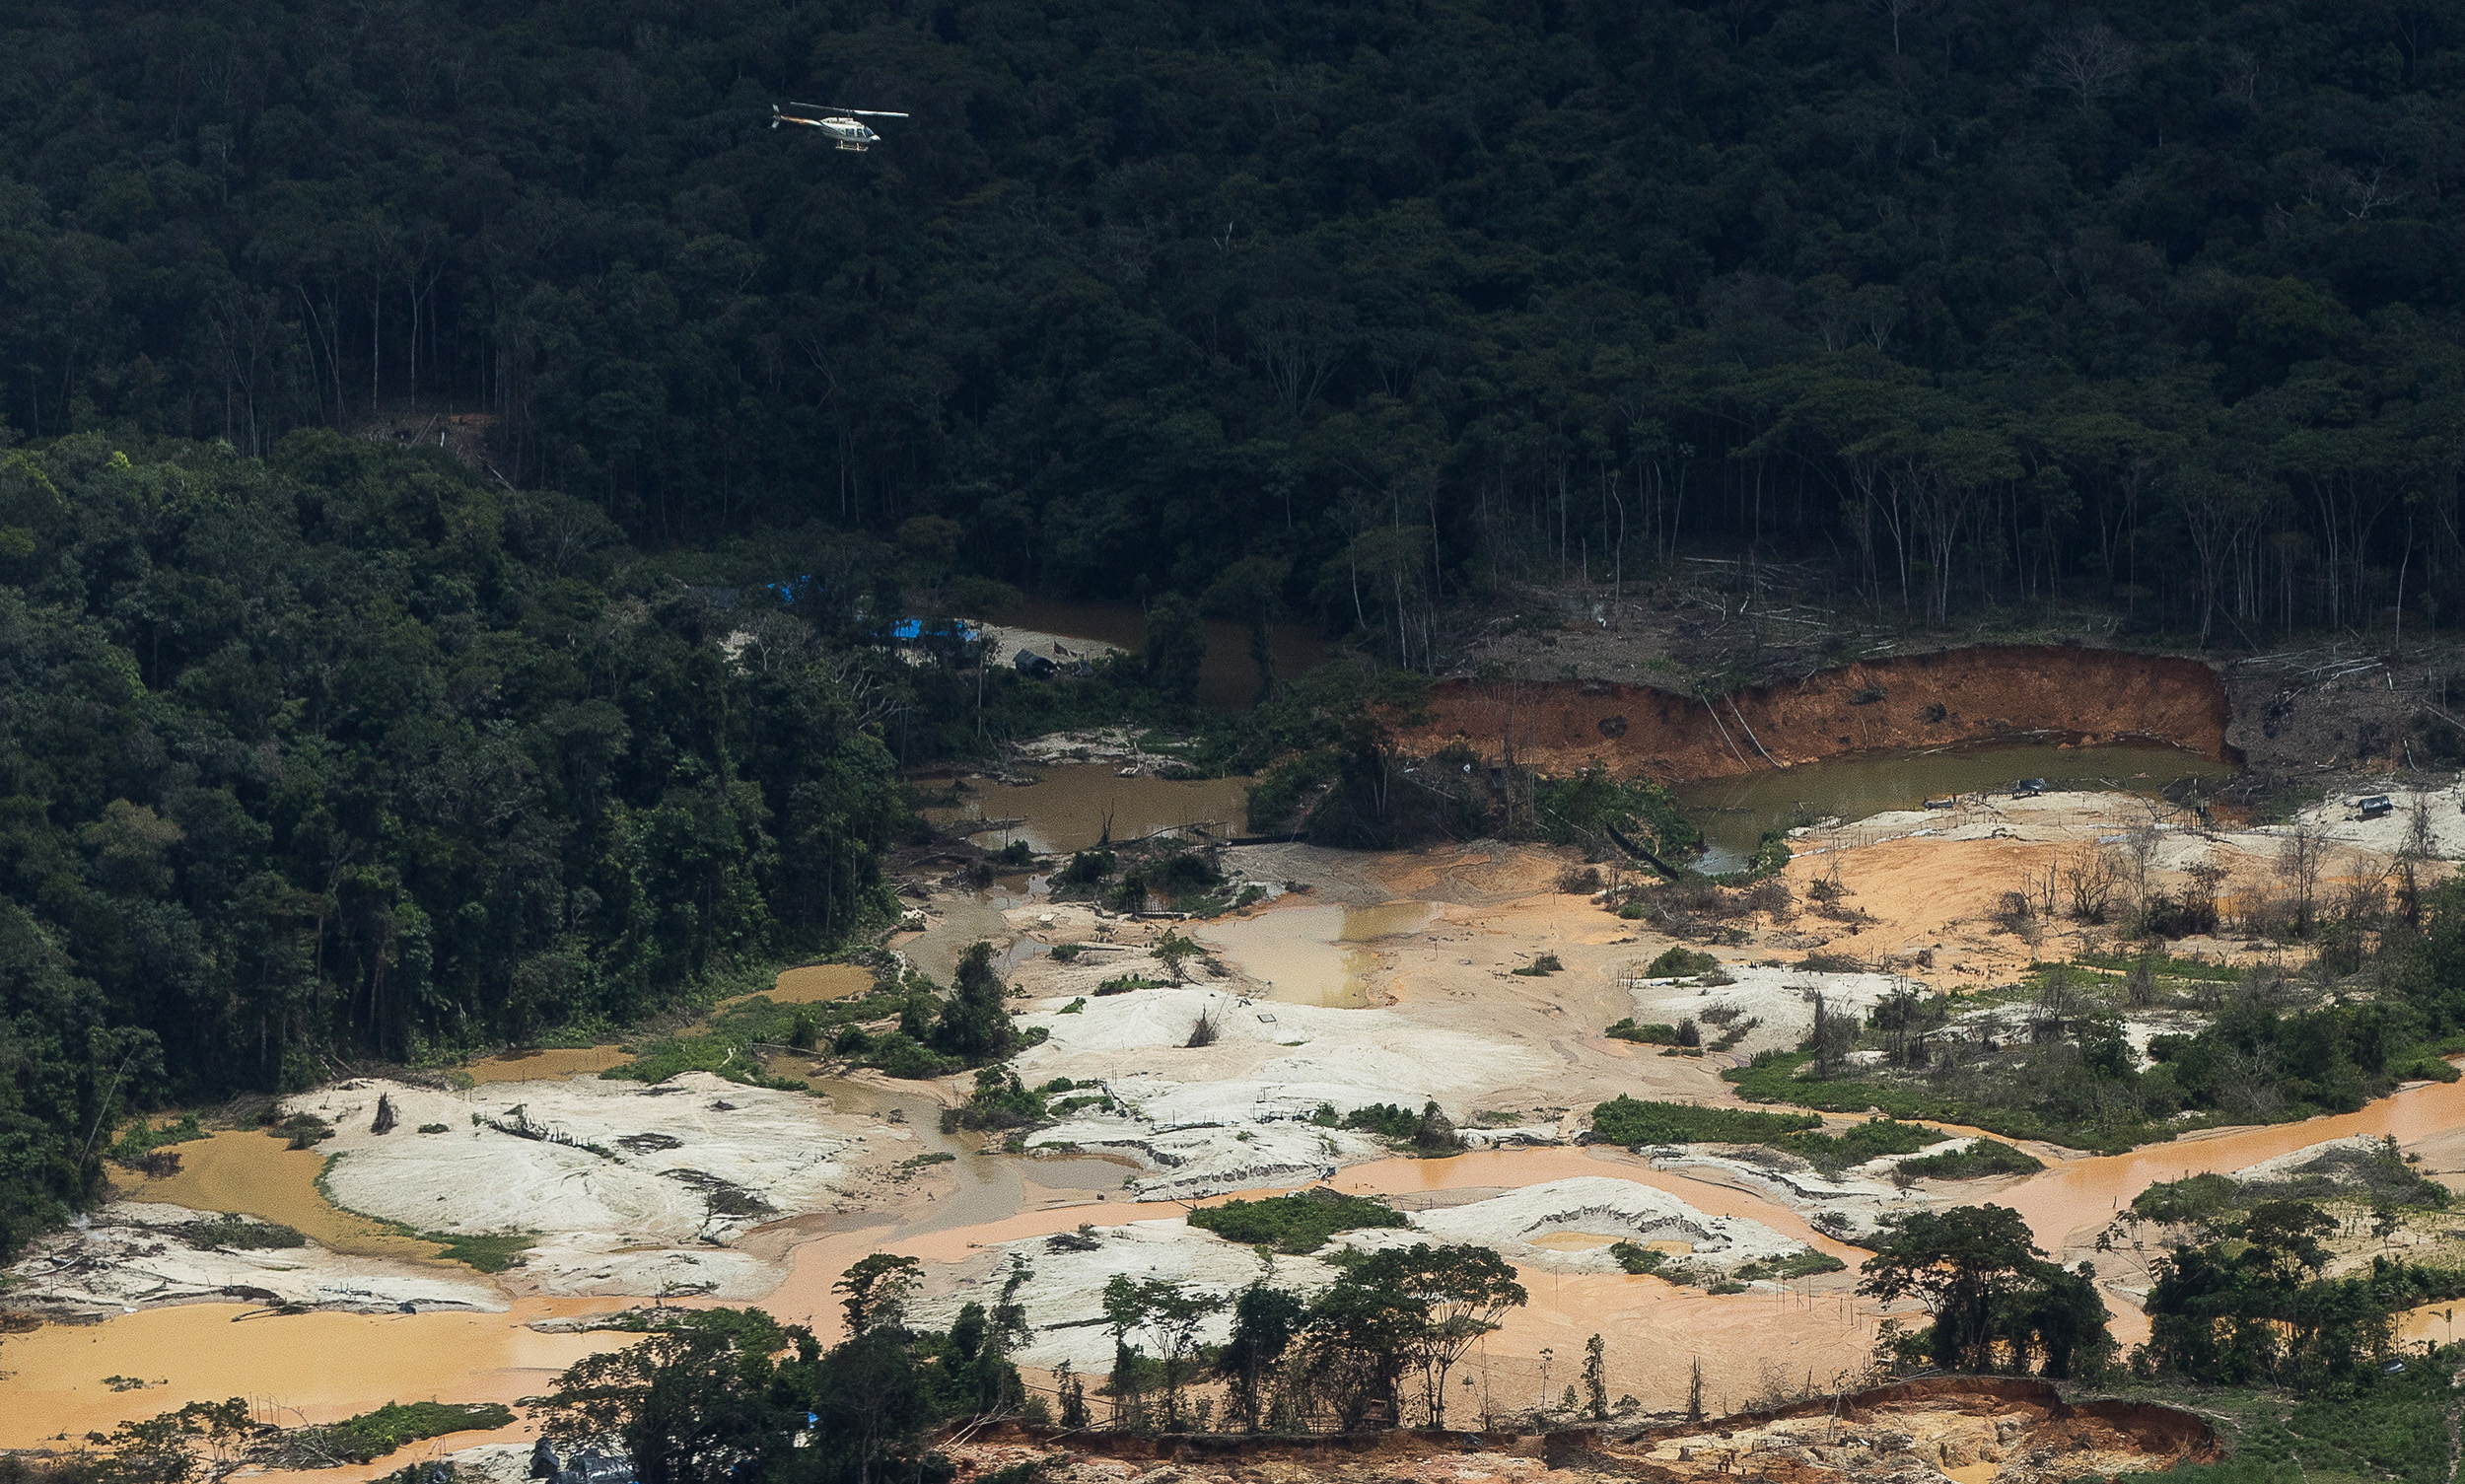 Pilots and aircraft owners working in the area have also been getting richer, some earning as much as R$ 200,000 a week, according to the Federal Police. They are responsible for the logistics that supports the mining activities at the TI (Photo: Bruno Kelly/Amazônia Real)